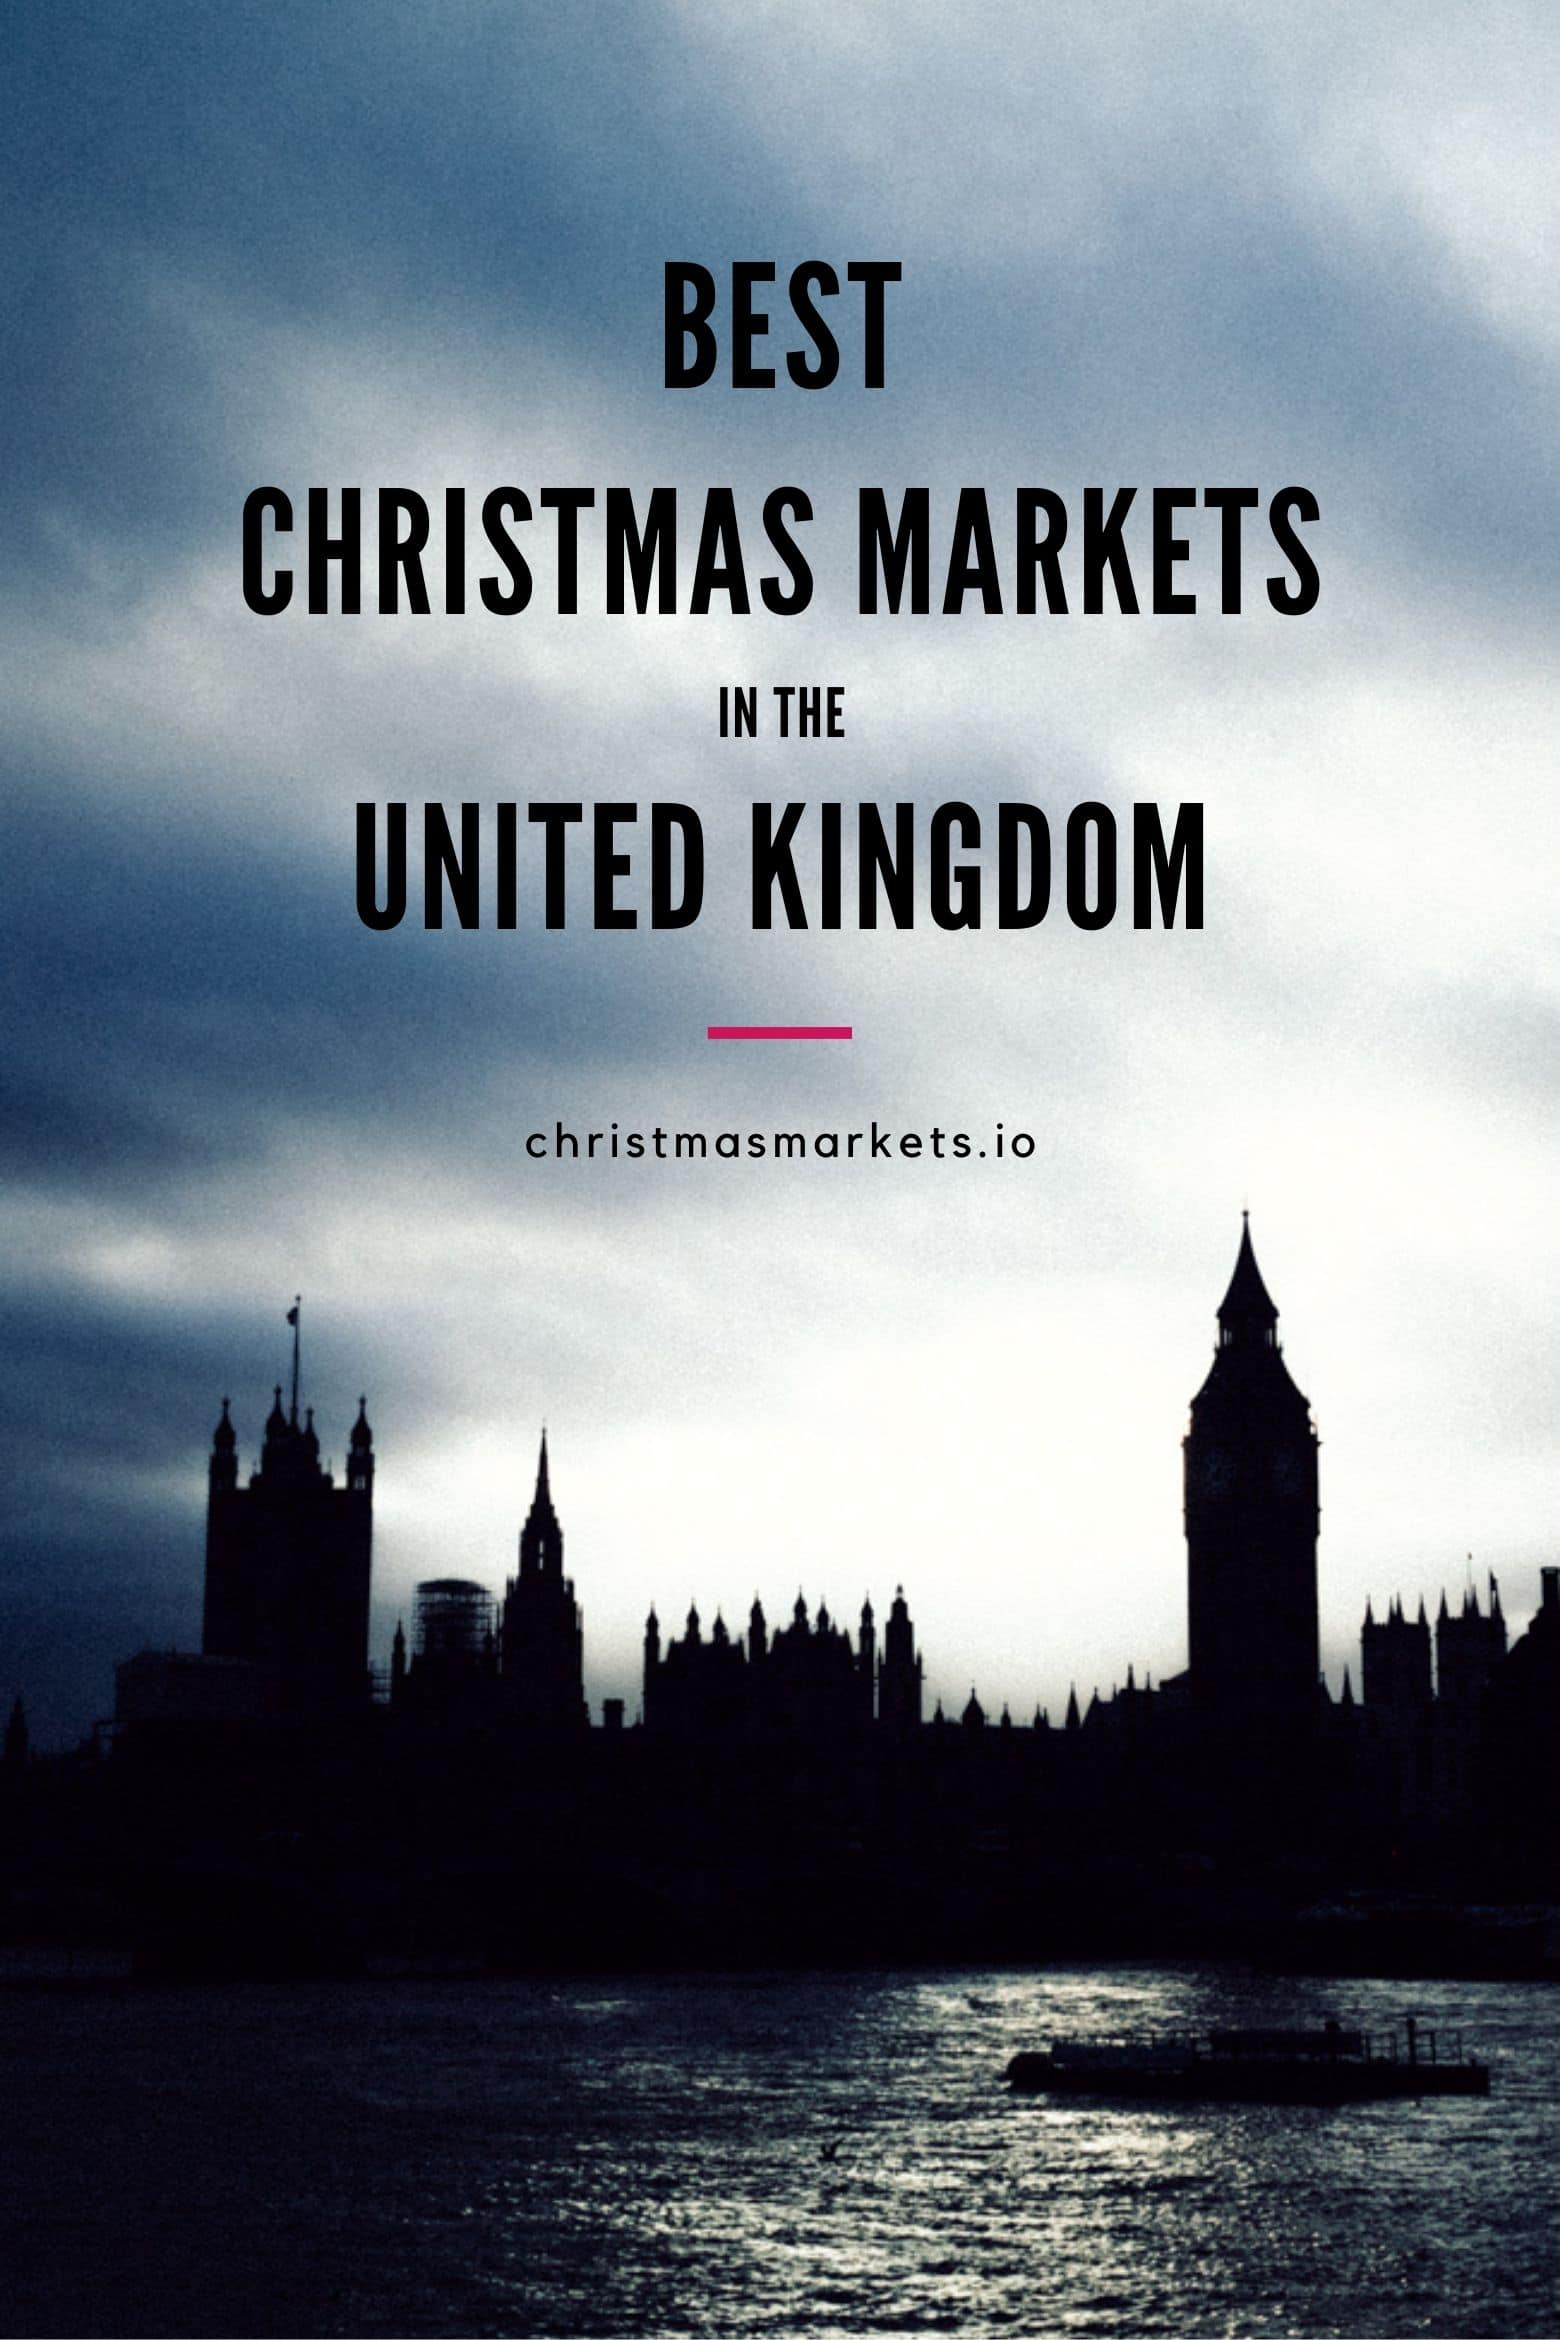 Christmas Markets in the United Kingdom